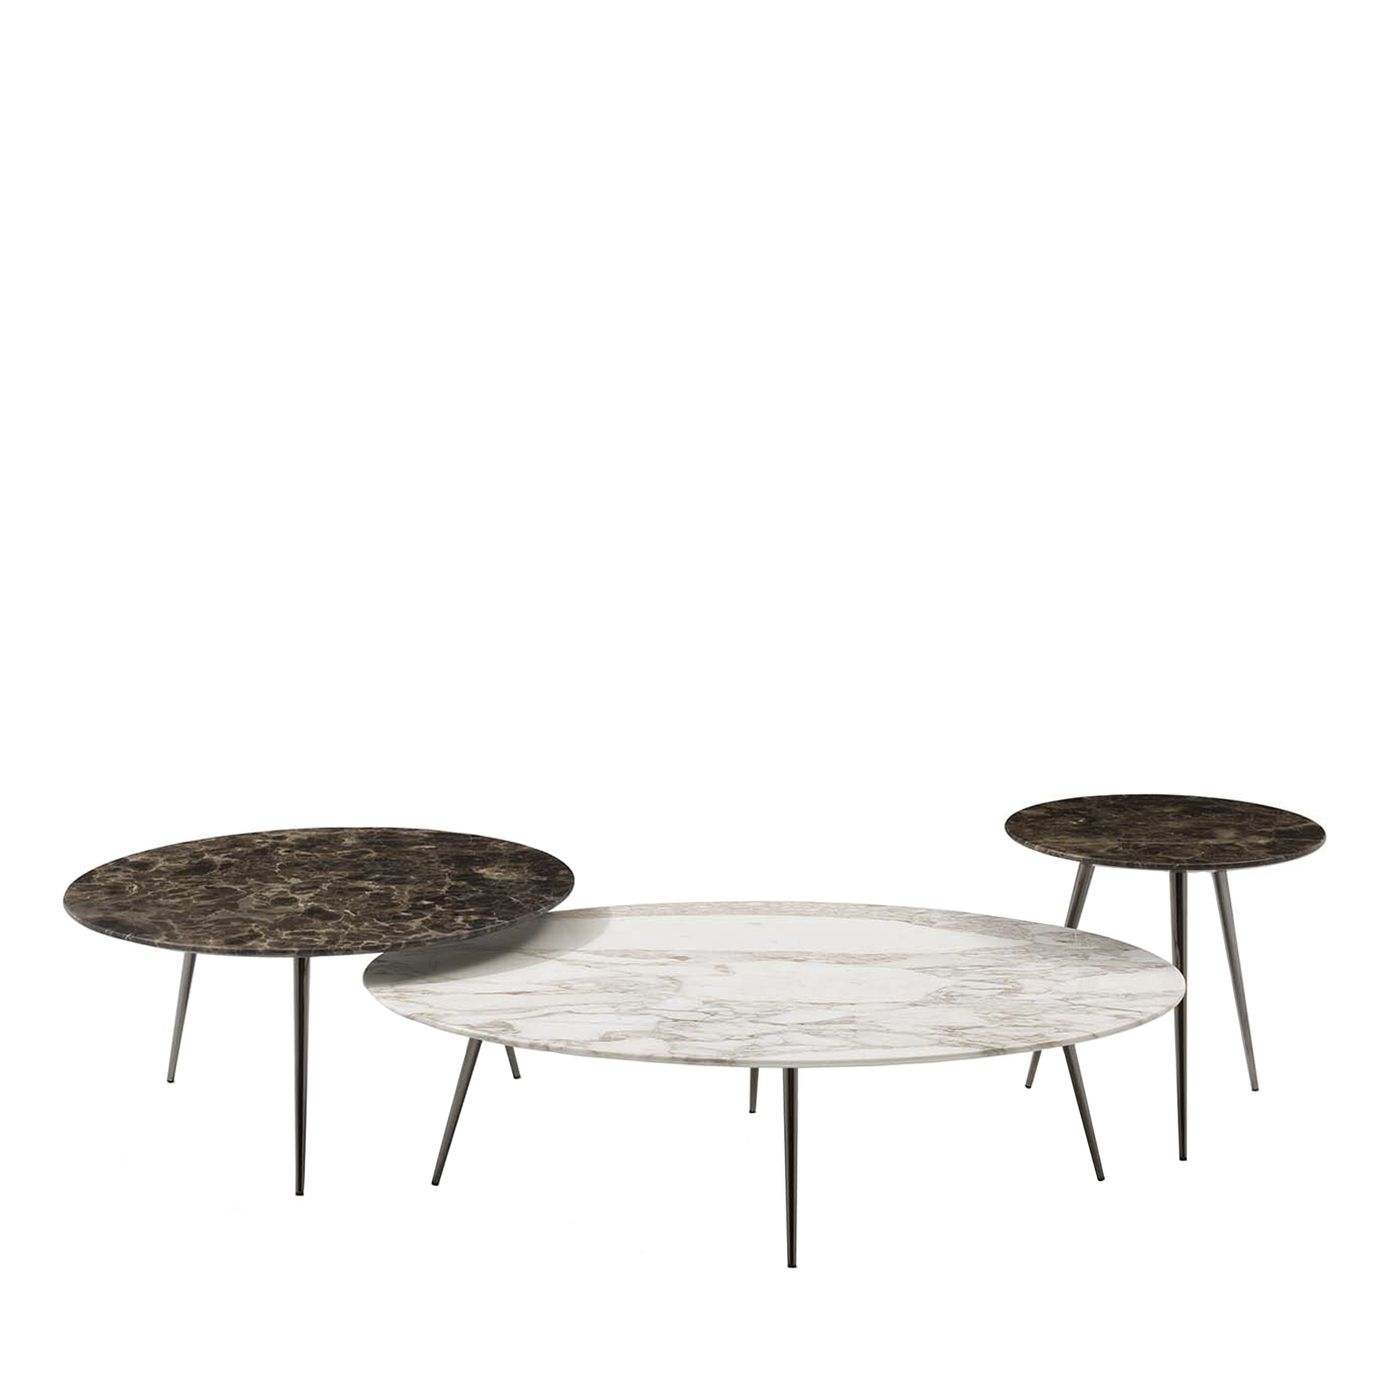 Set Of 3 Cinquanta Oval Nesting Tables Oval Marble Coffee Table Coffee Table Nesting Tables [ 1400 x 1400 Pixel ]